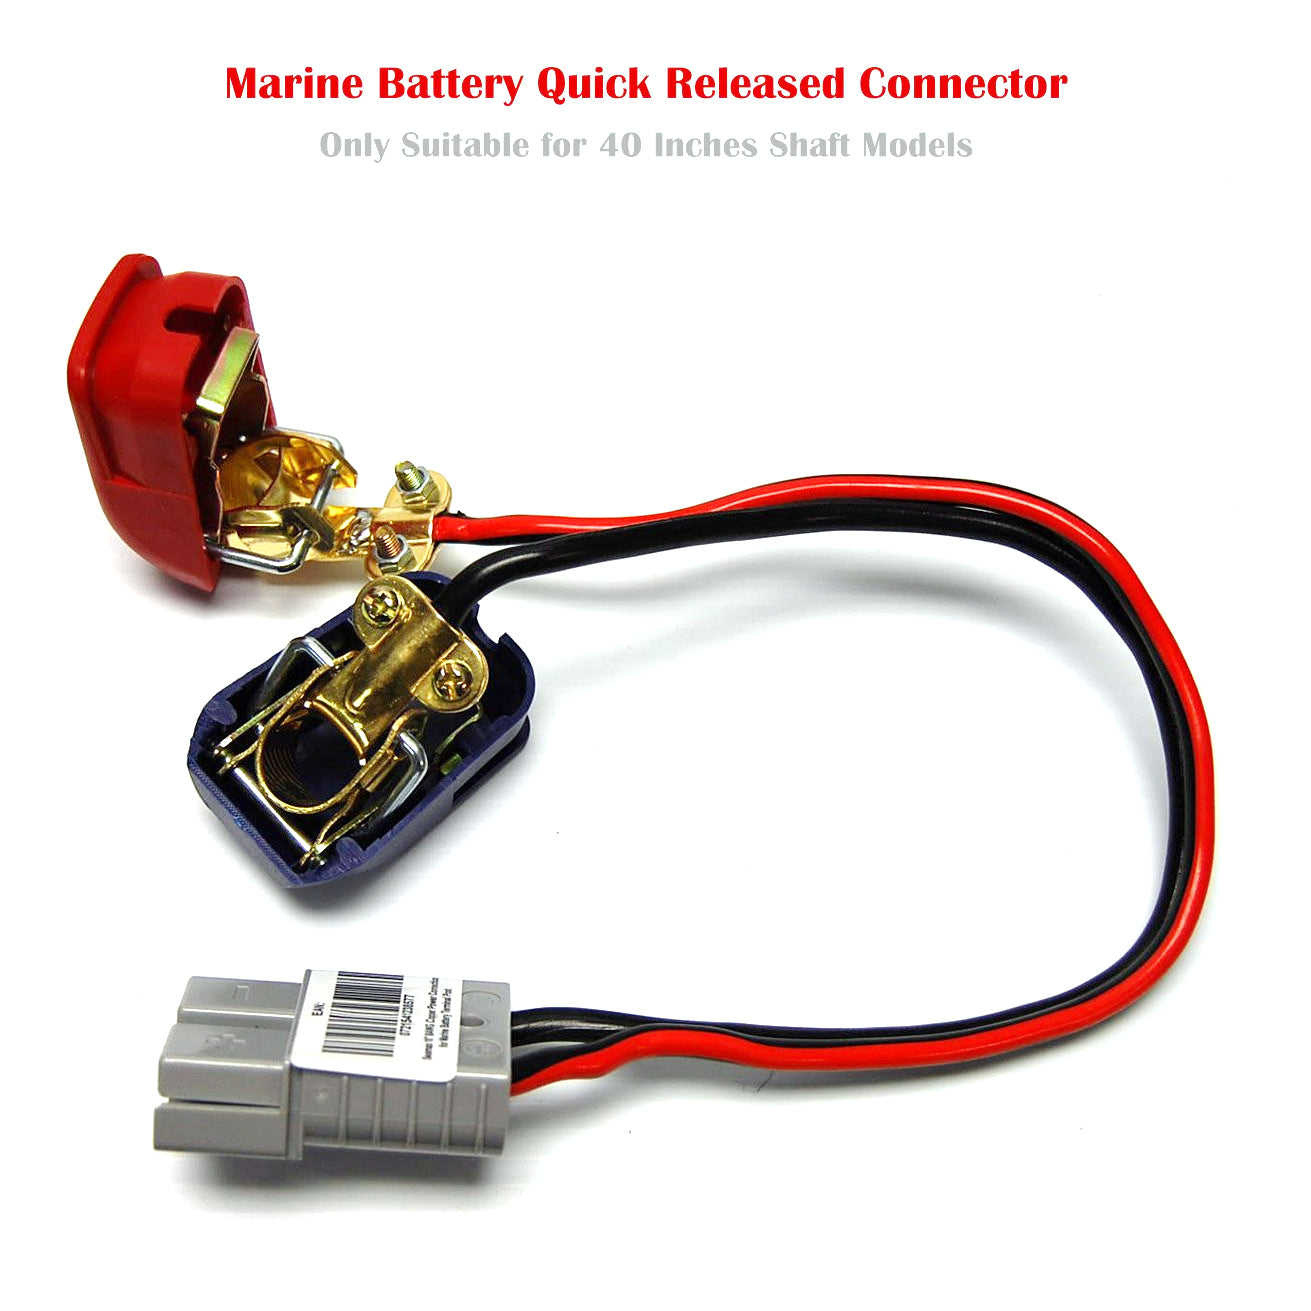 Marine Quick Connect Wiring Diy Enthusiasts Diagrams Connectors Released Connector For Battery Terminal Suitable Rh Seamaxmarine Com Products Parrot Trailer Harness